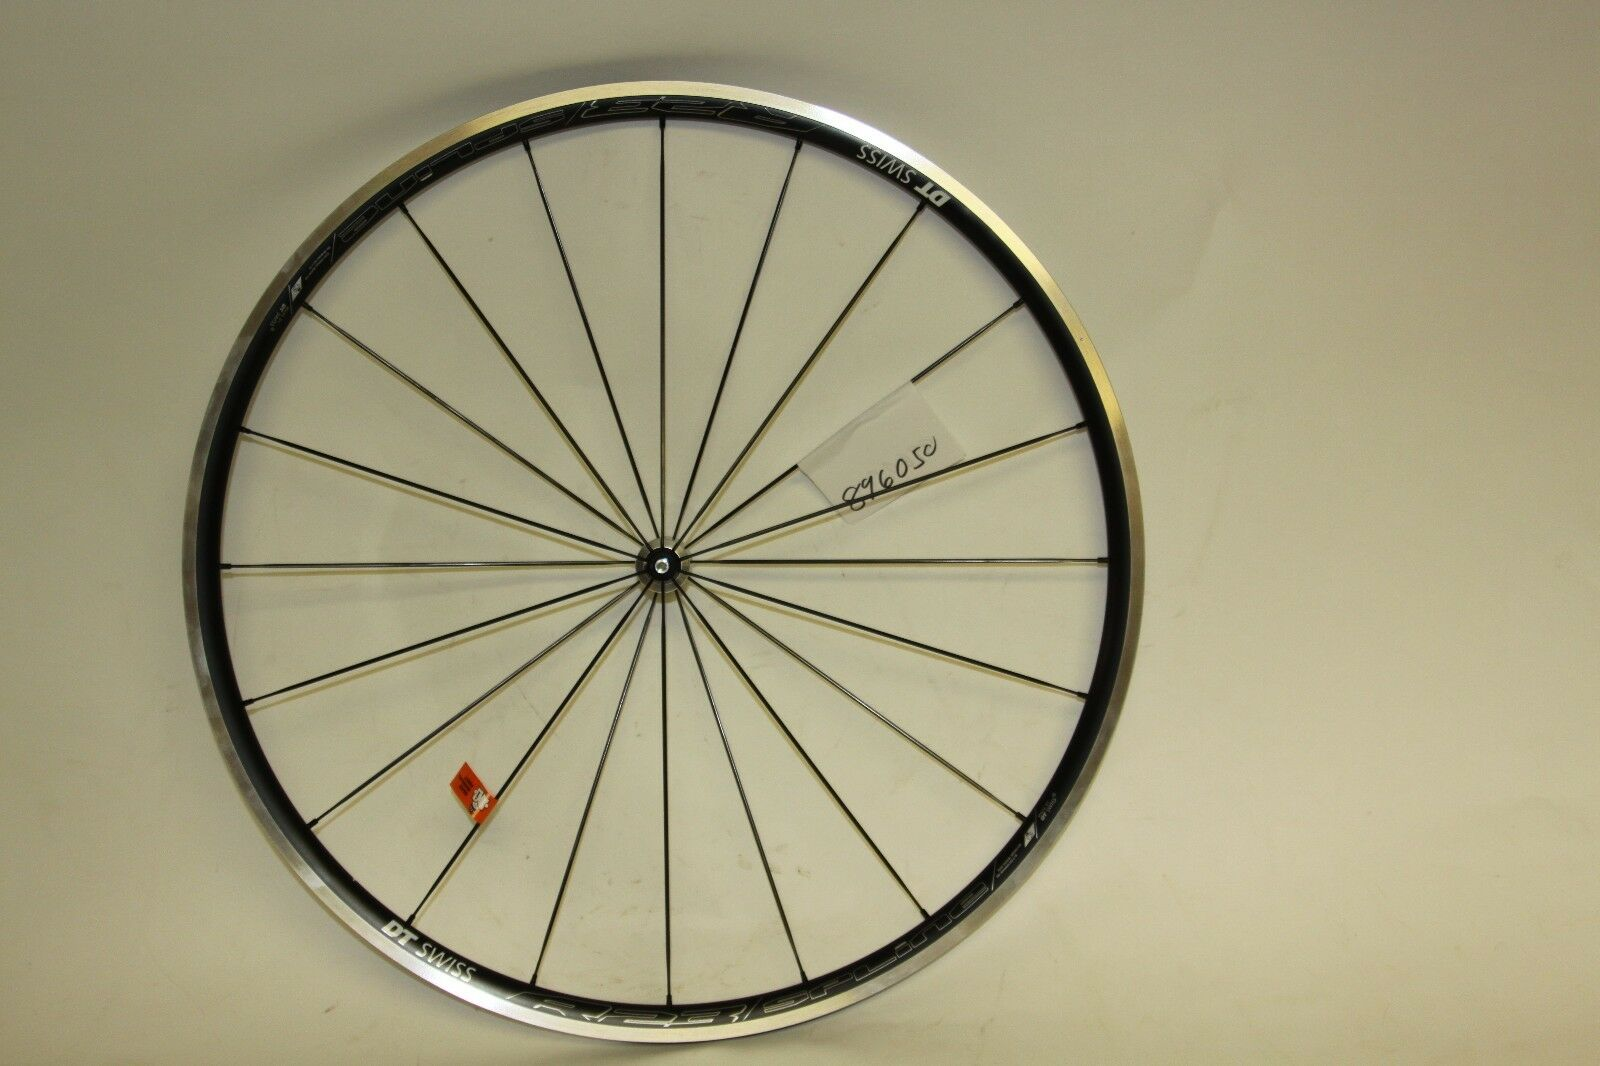 DT Swiss R23 Spline 700c Wheelset 9-10 spd 130 100mm Tubeless 10mm QR 896050 51